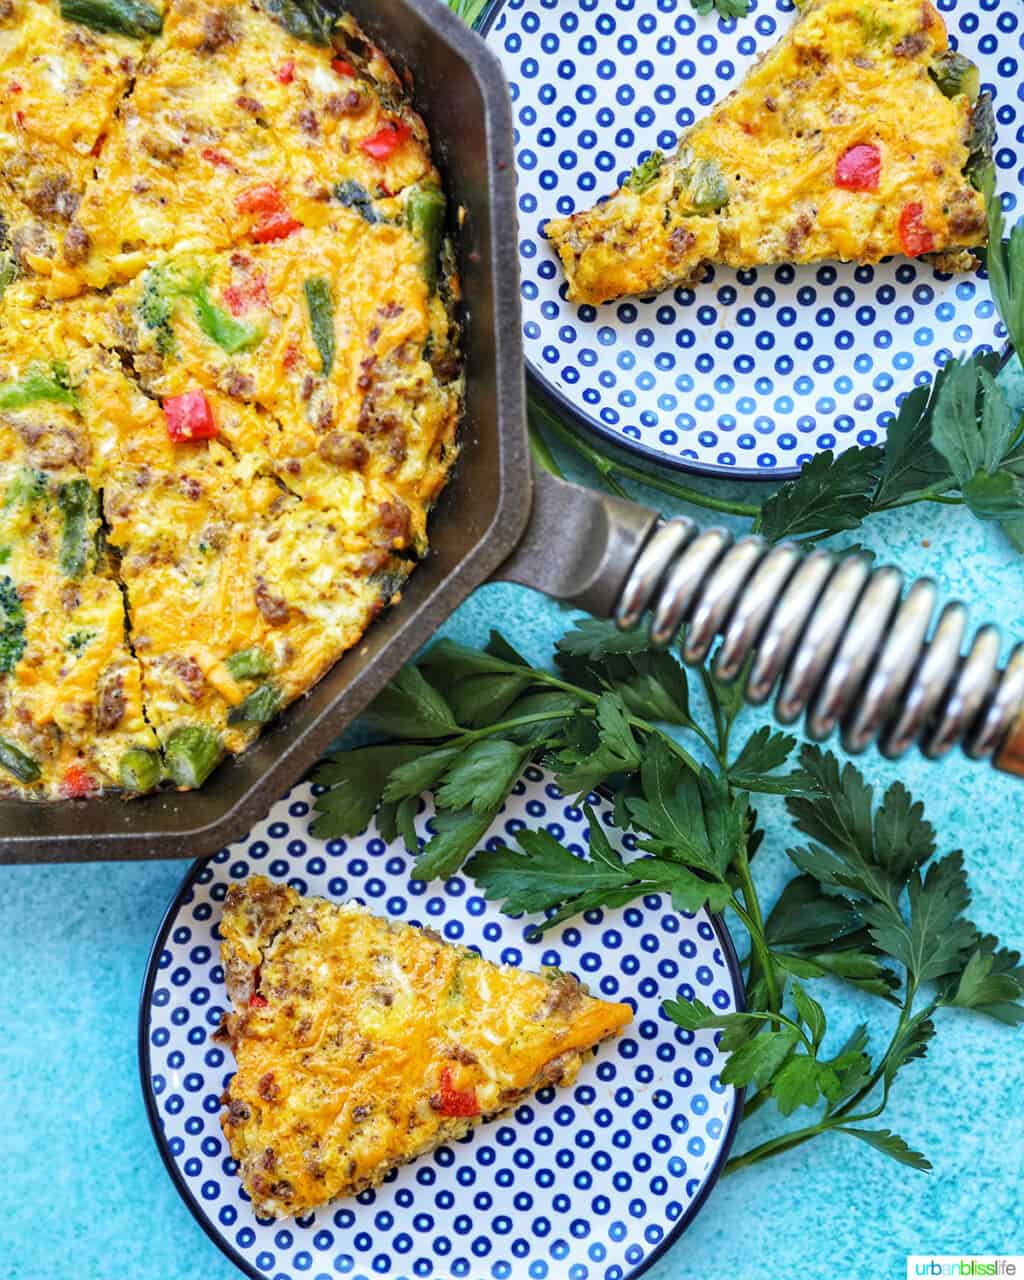 Sausage Frittata in pan with slices on plates